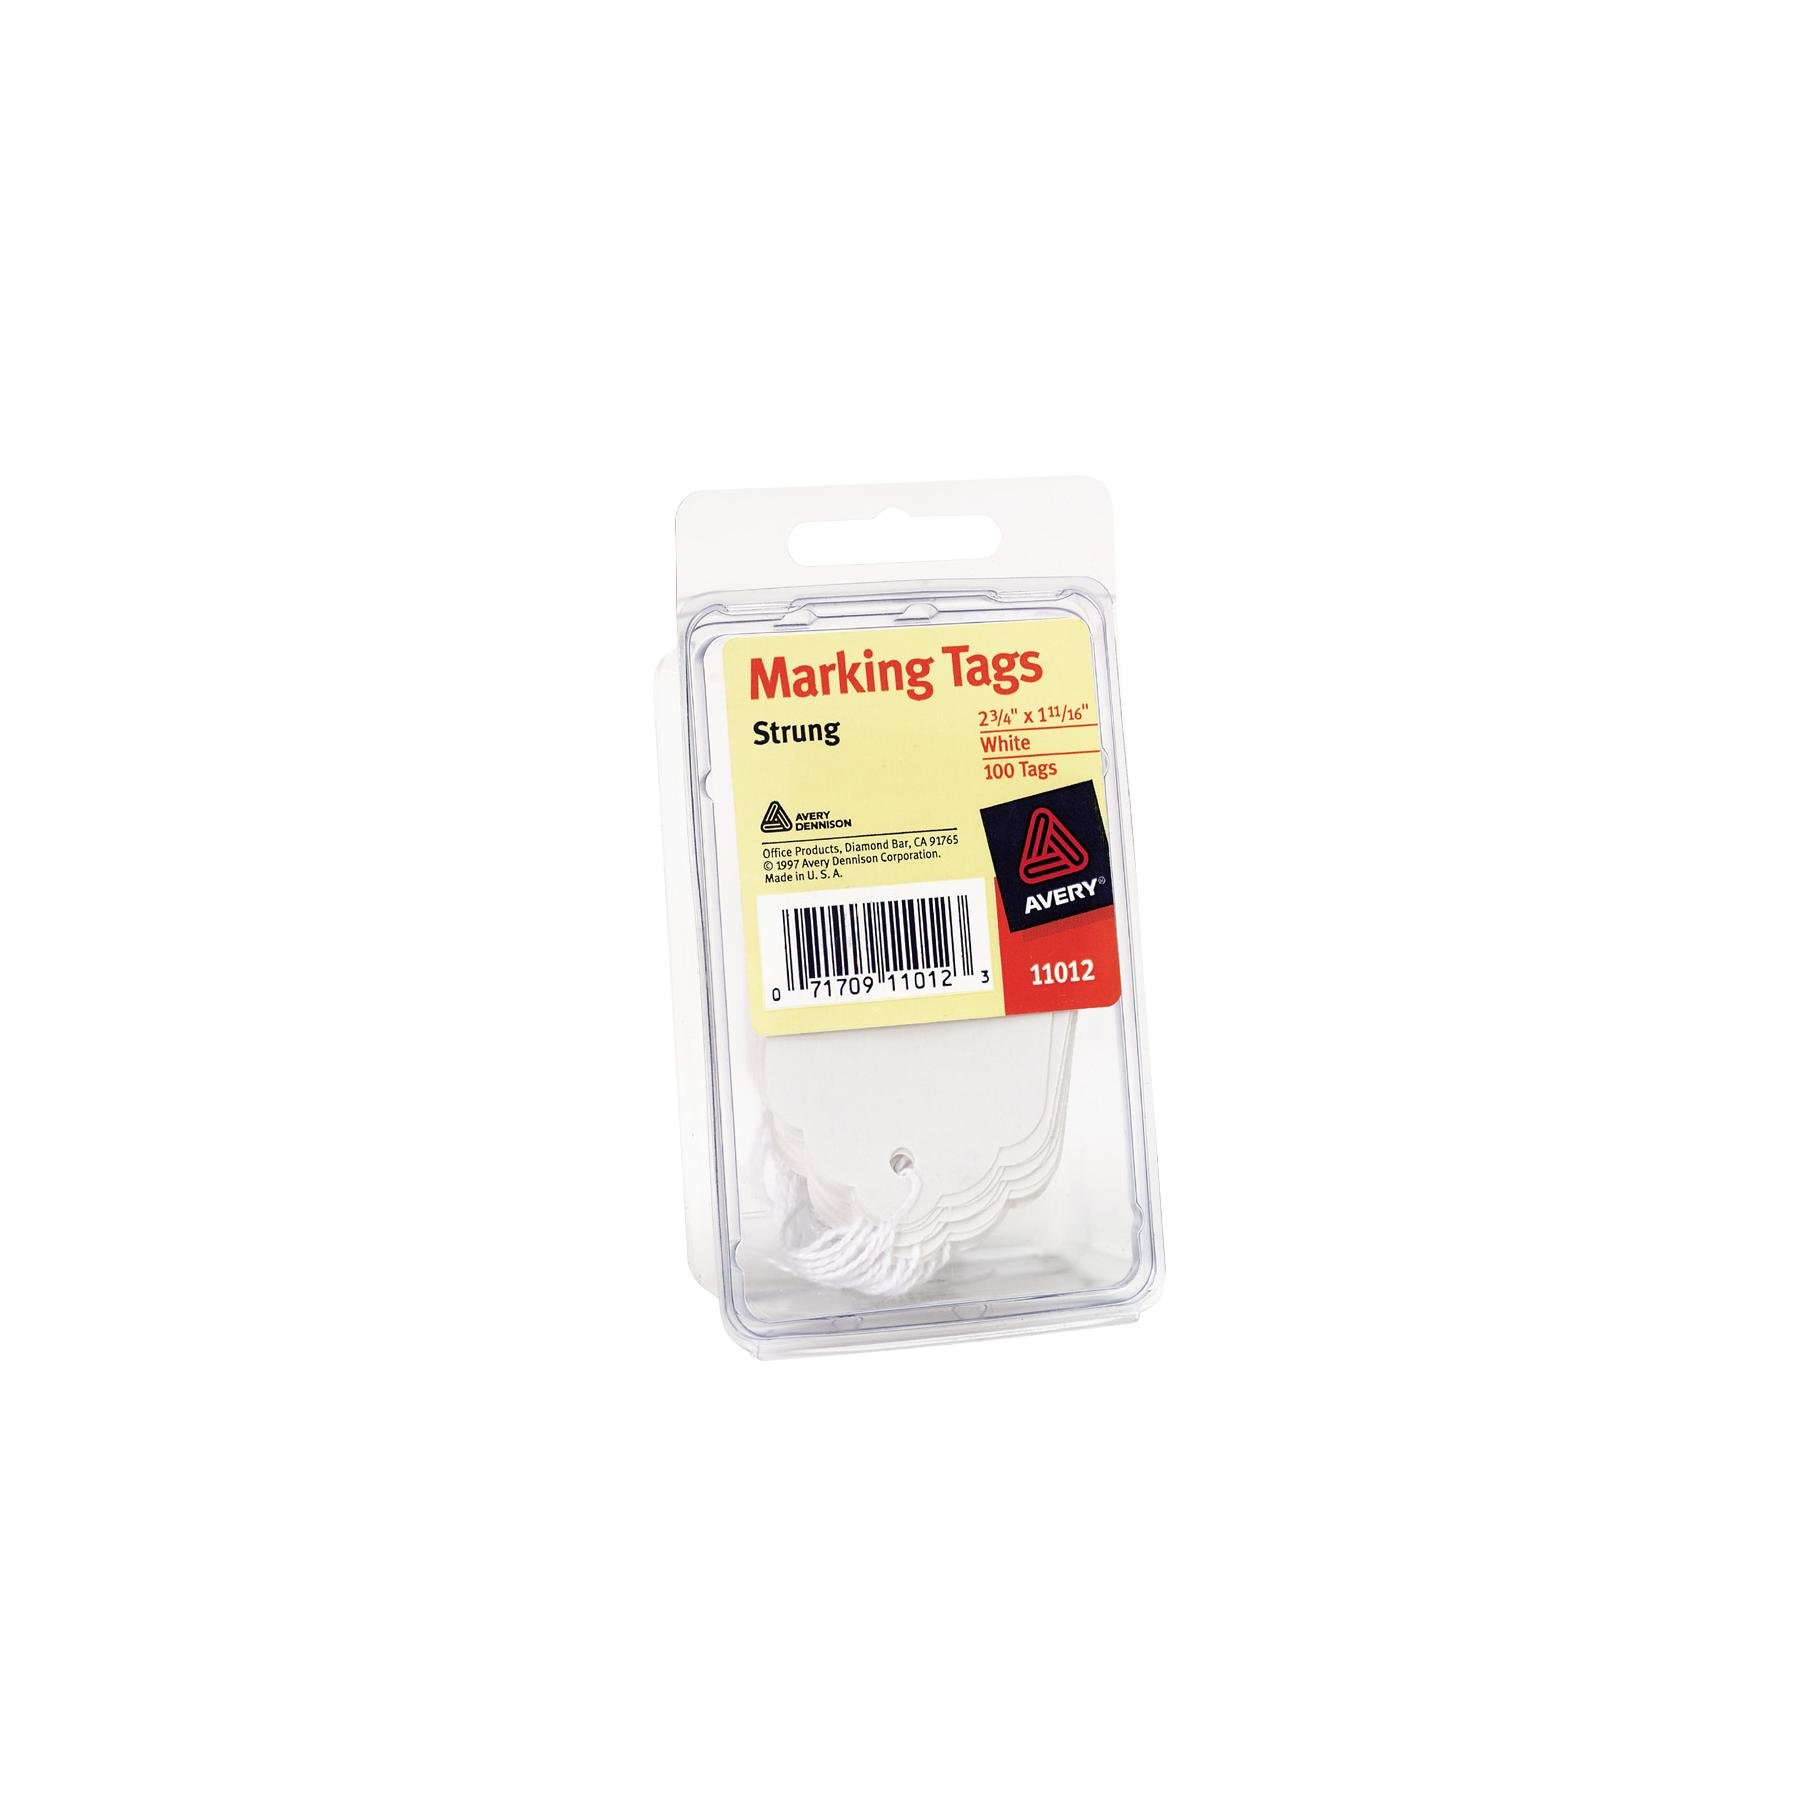 Avery Marking Tags, Strung, 2.75 x 1.68 Inches, White, Pack of 100 (11012)